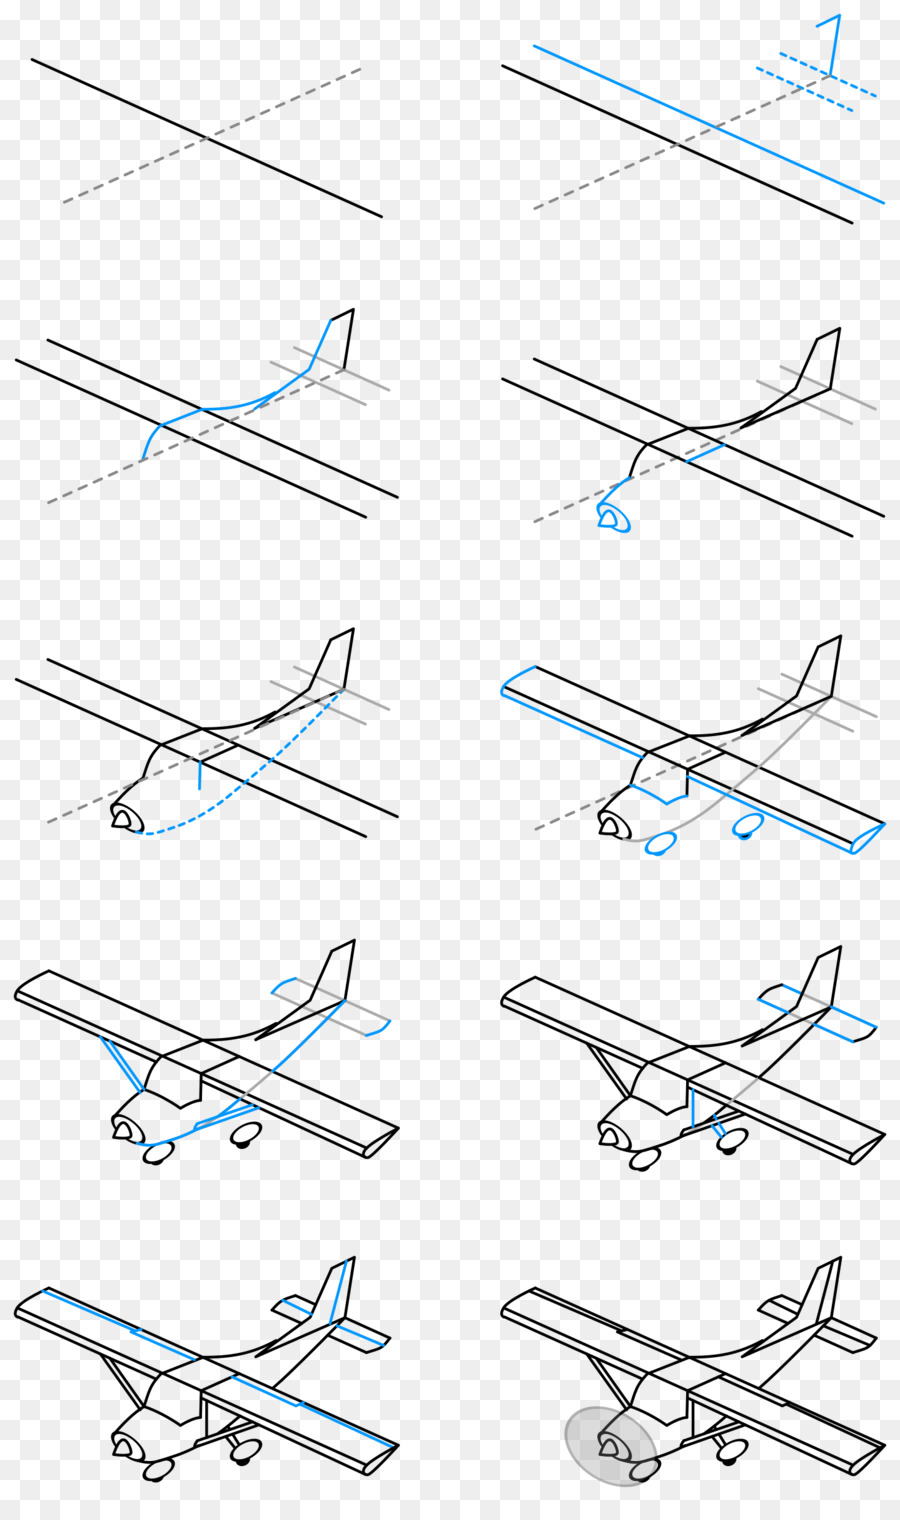 Paper Airplane Drawing Clipart Airplane Technology Transparent